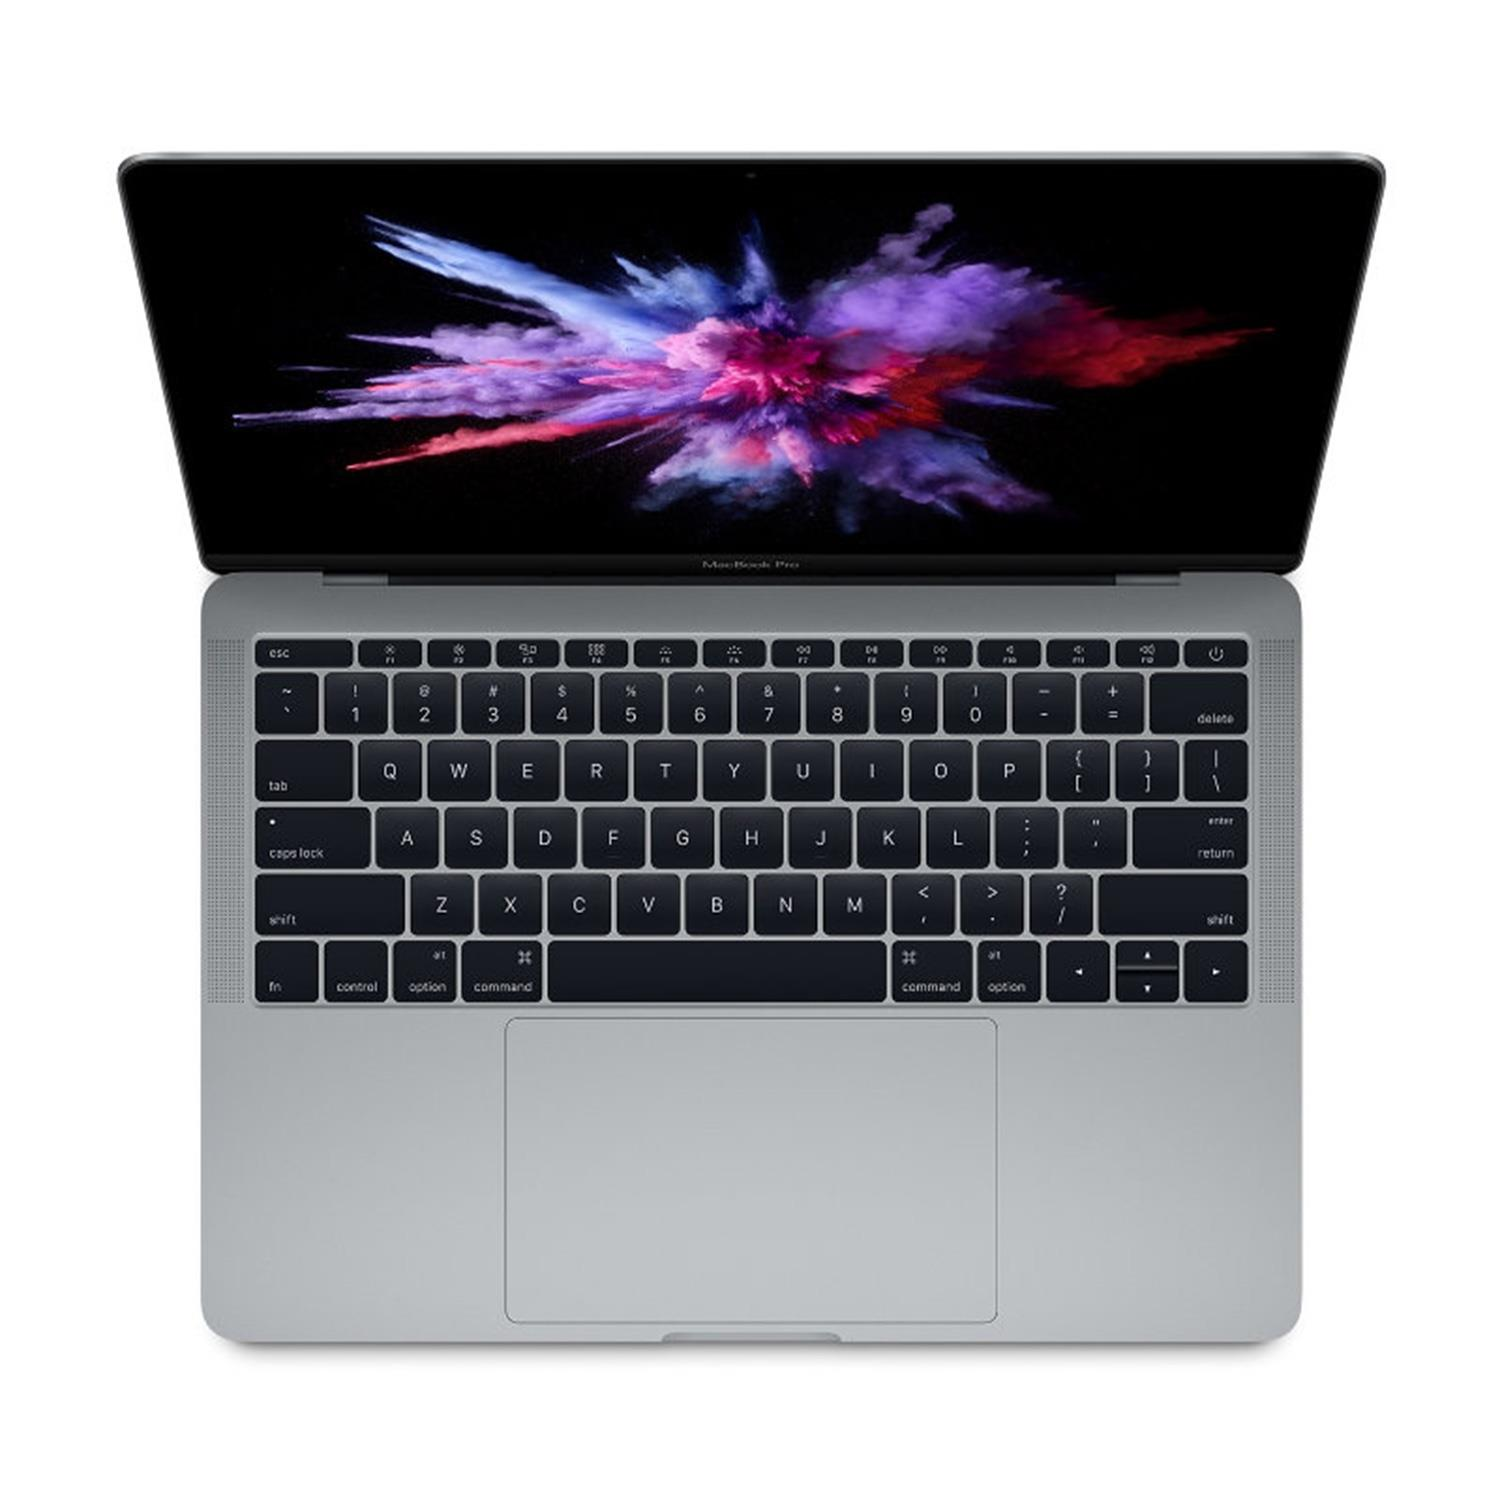 MacBook Pro 13-inch: 2.3GHz dual-core Intel Core i5, 128GB - Space Grey | Tradeline Egypt Apple